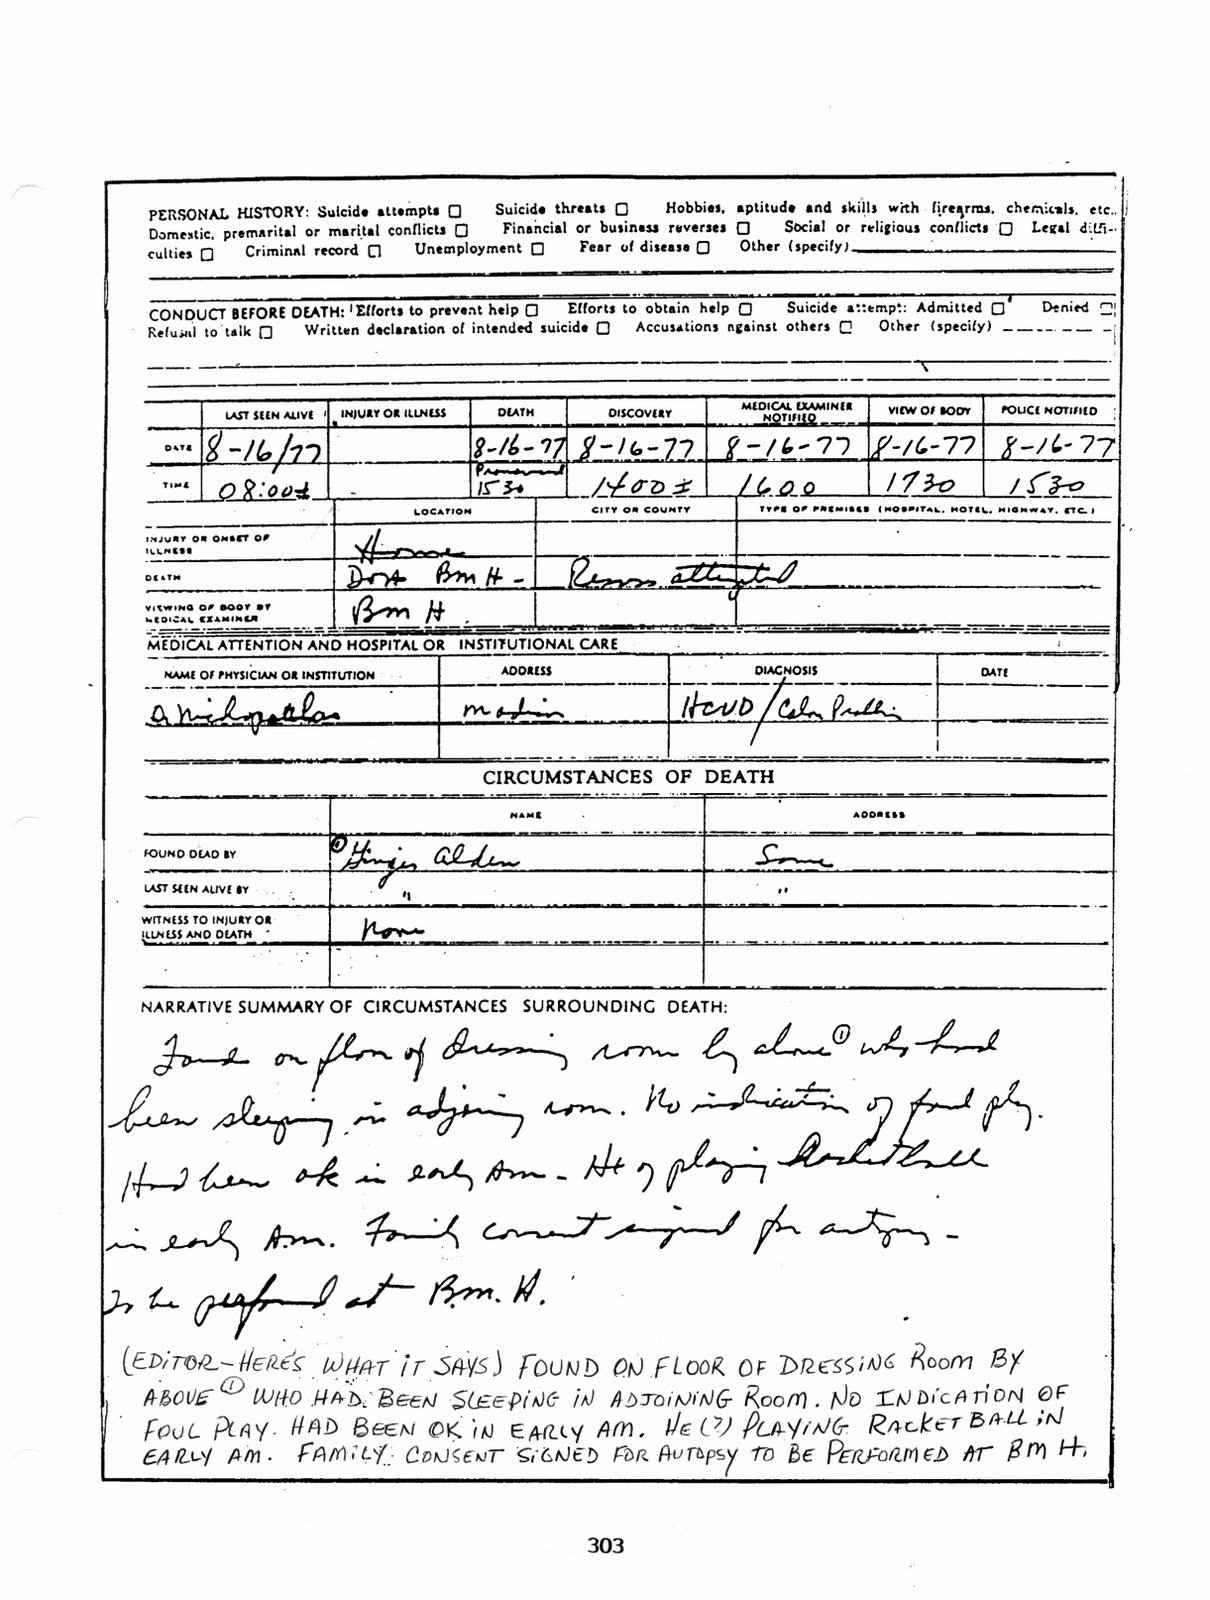 [Elvis'+medical+report+page+-2]